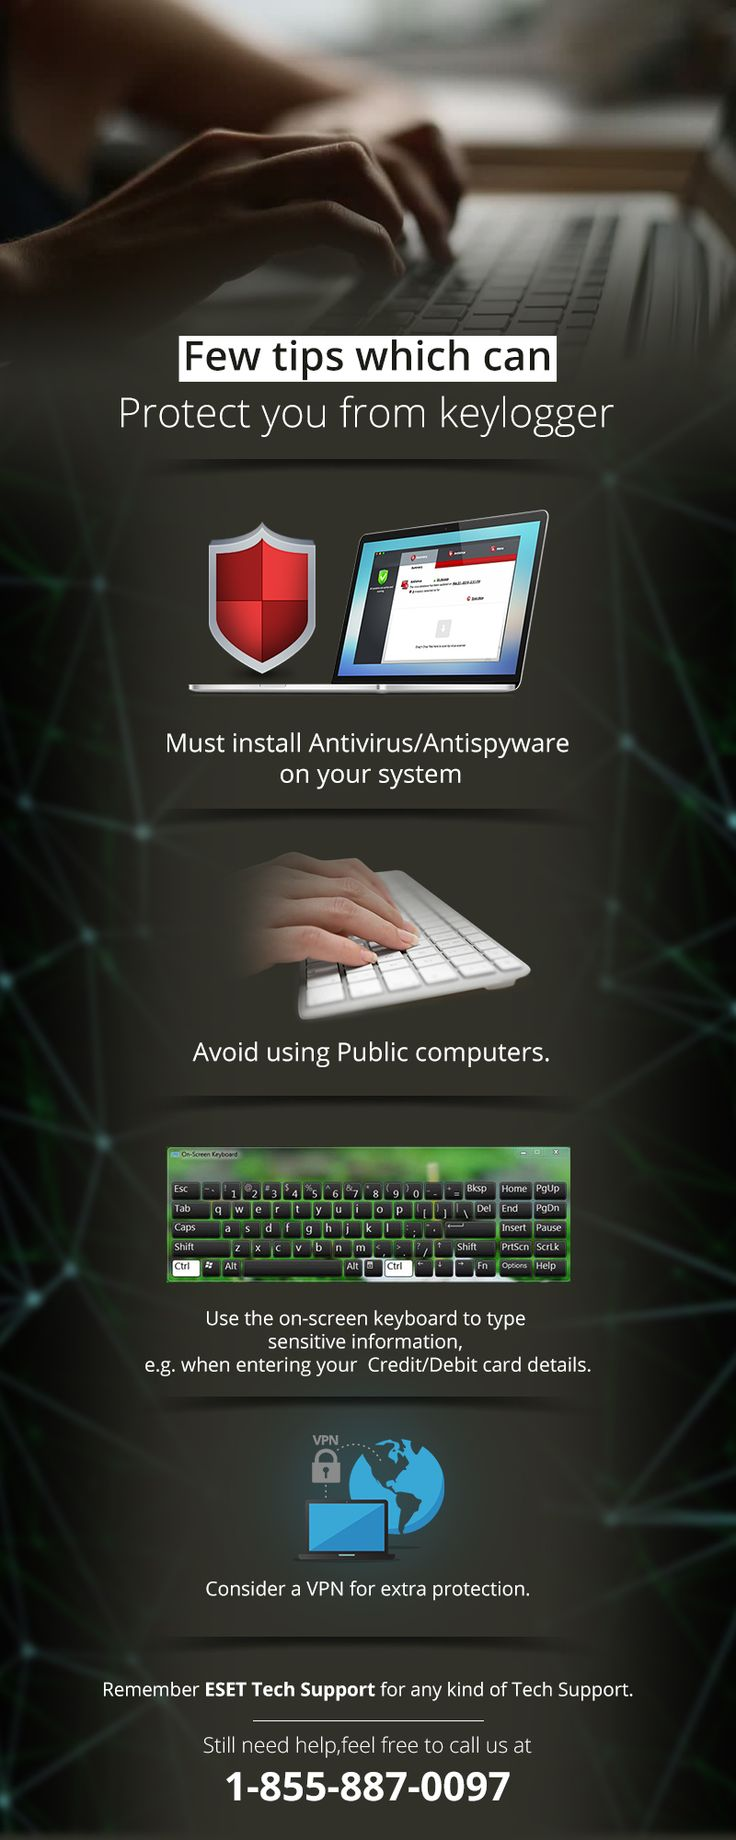 Protect your system from keylogger 19 best